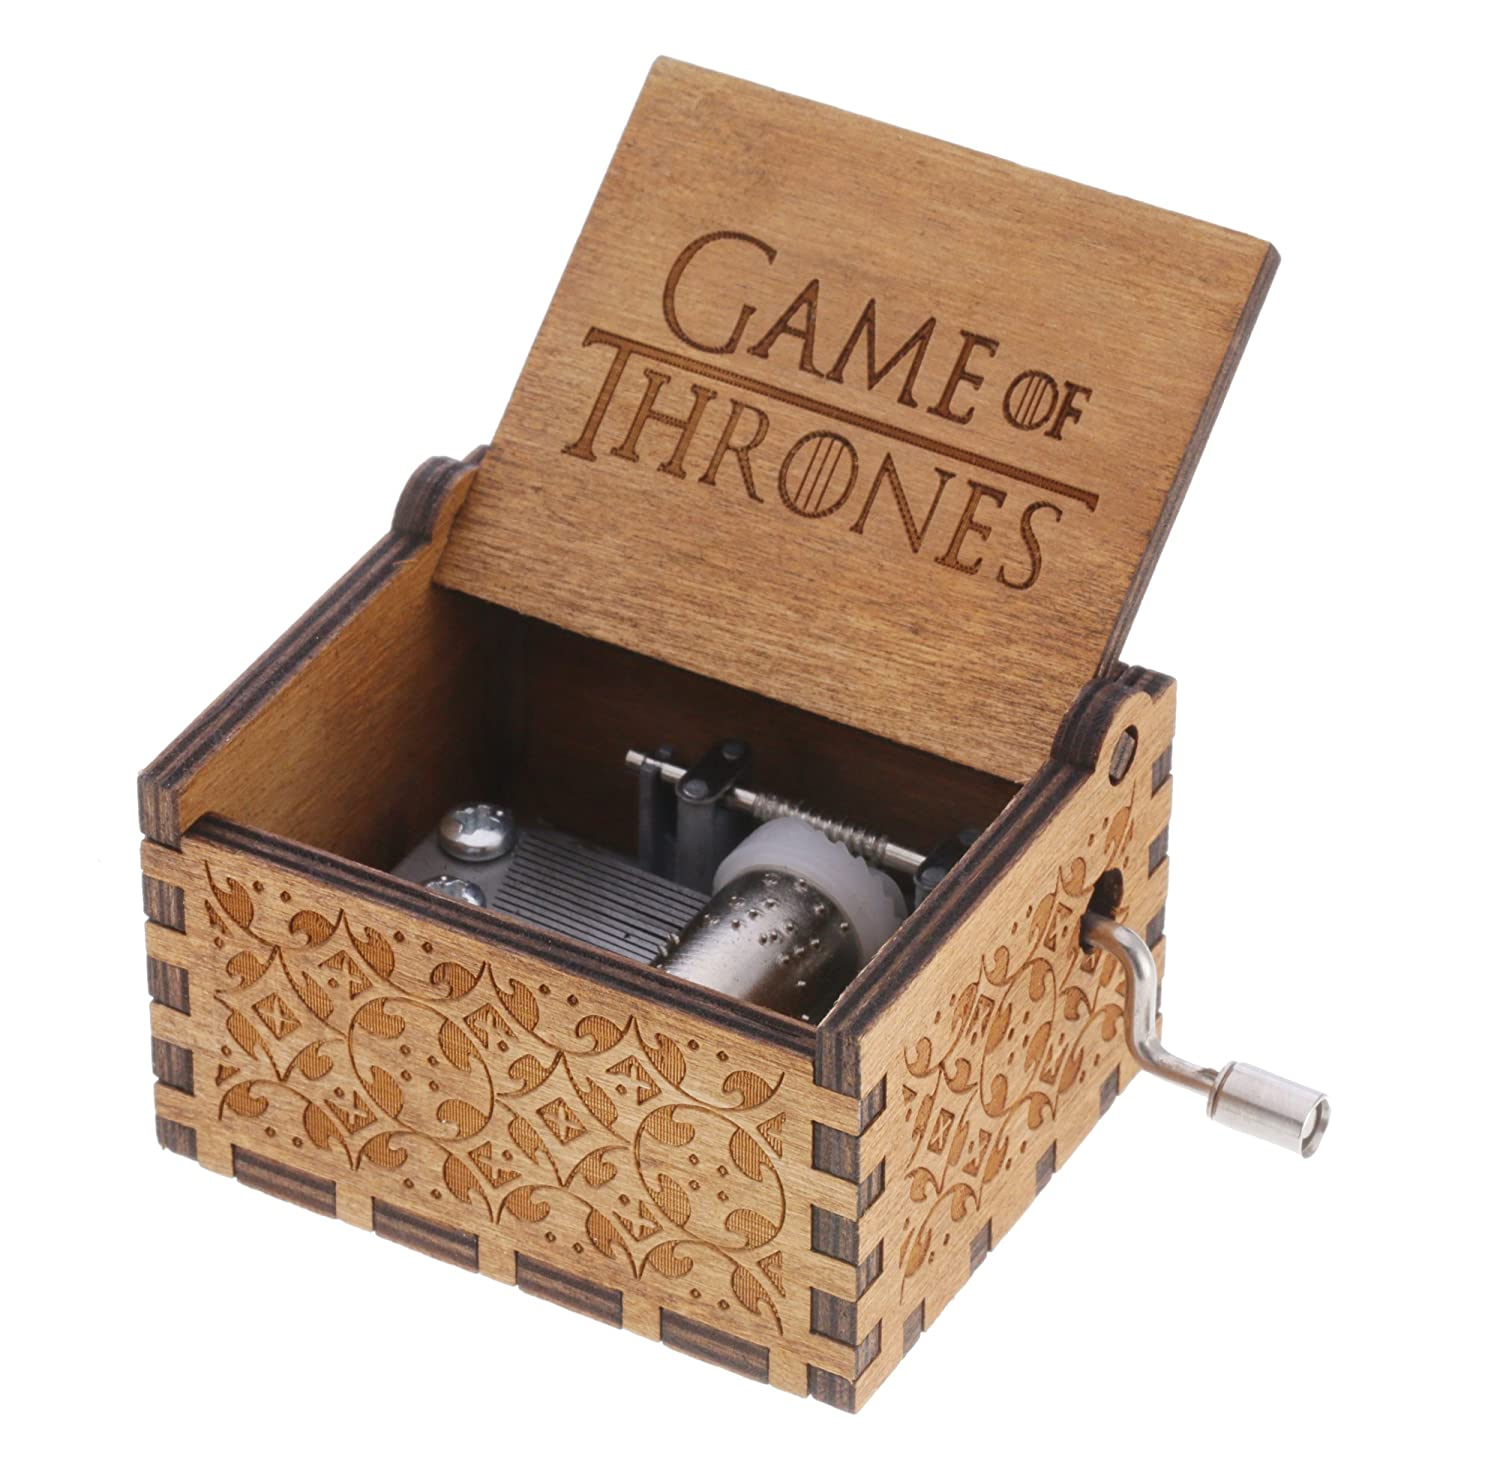 早割クーポン! REINDEAR of Game of Thrones Thrones Theme木製音楽ボックス B07DVCSWZJ Game ウッド, KICHI-KICHE:192cf0a1 --- arcego.dominiotemporario.com